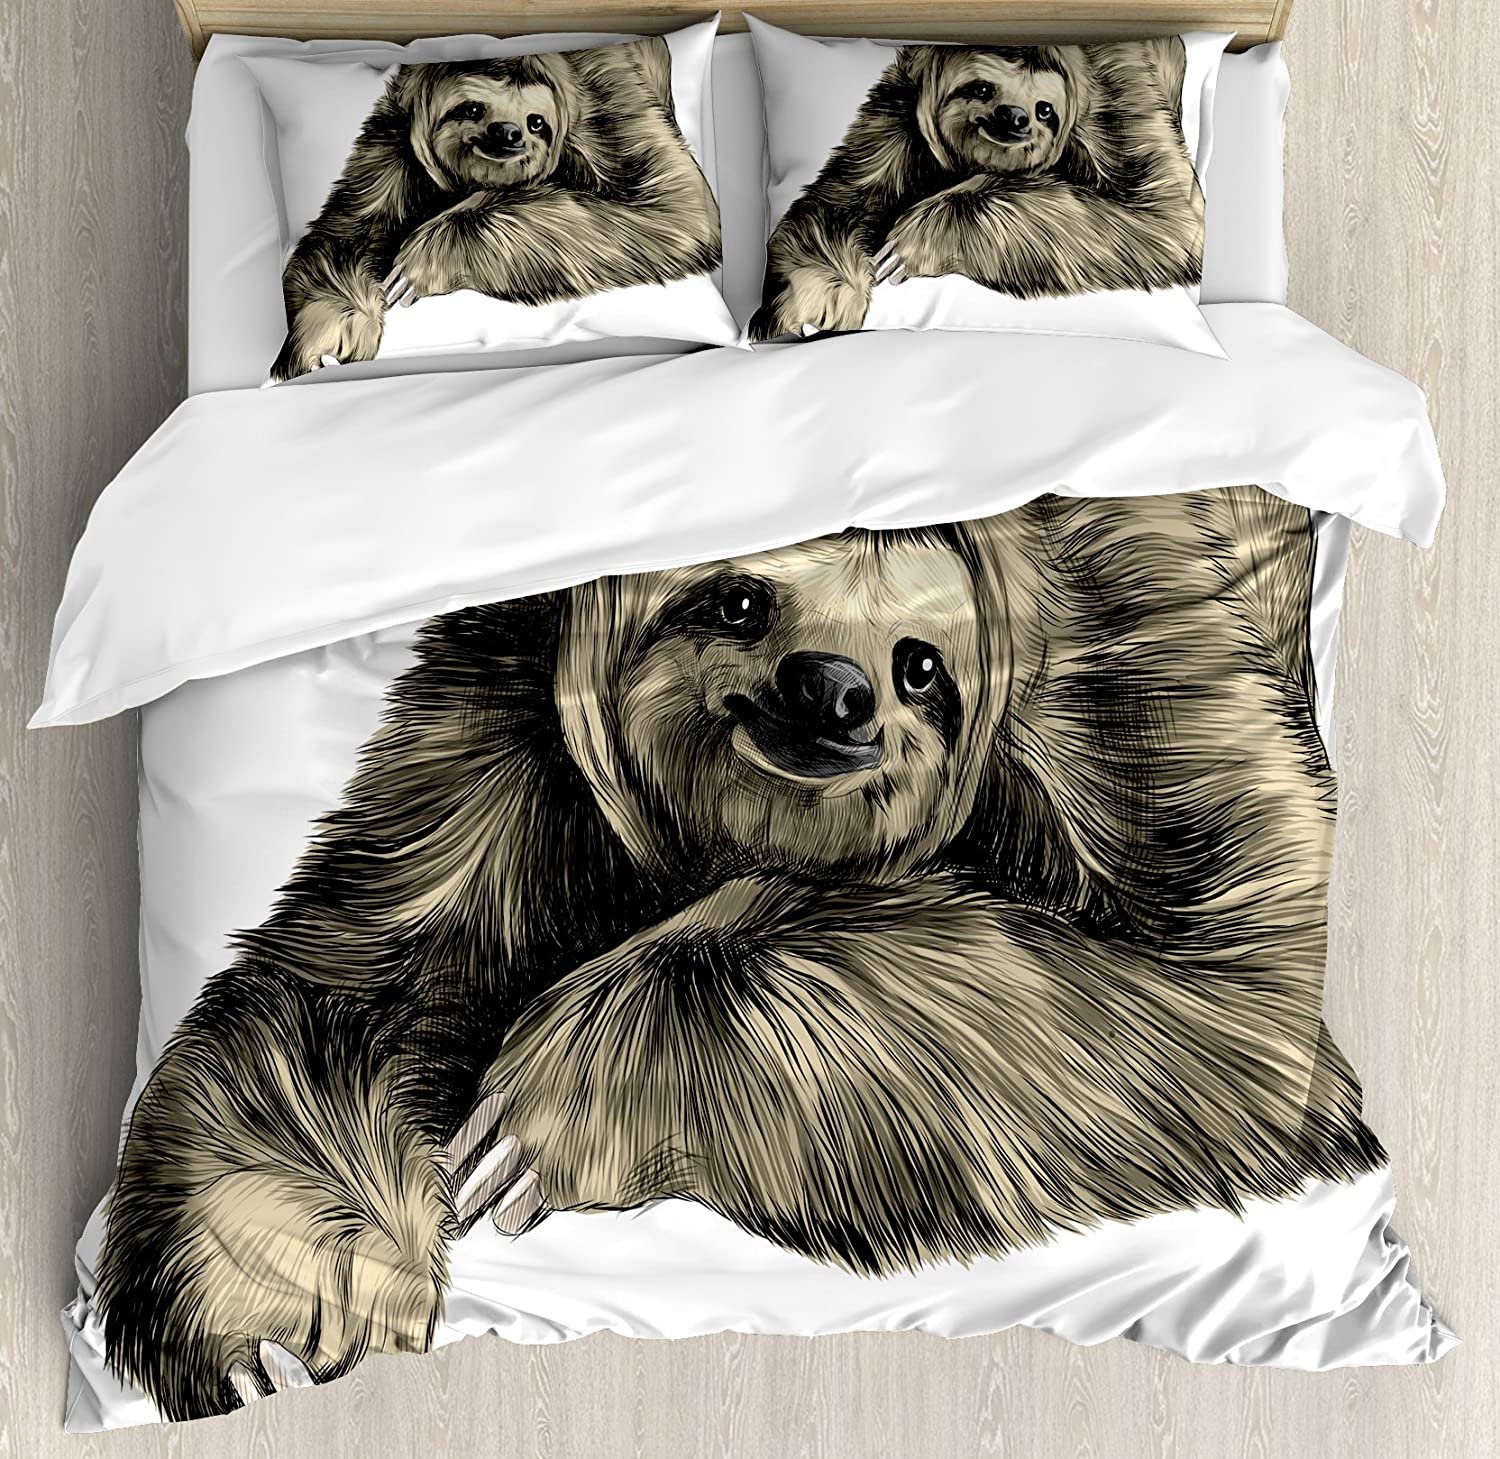 Ambesonne Sloth Duvet Cover Set, Sweetly Smiling Jungle Animals Lying Down with Crossed Legs Tropic Fauna Sketch, Decorative 3 Piece Bedding Set with 2 Pillow Shams, Queen Size, Black Ivory